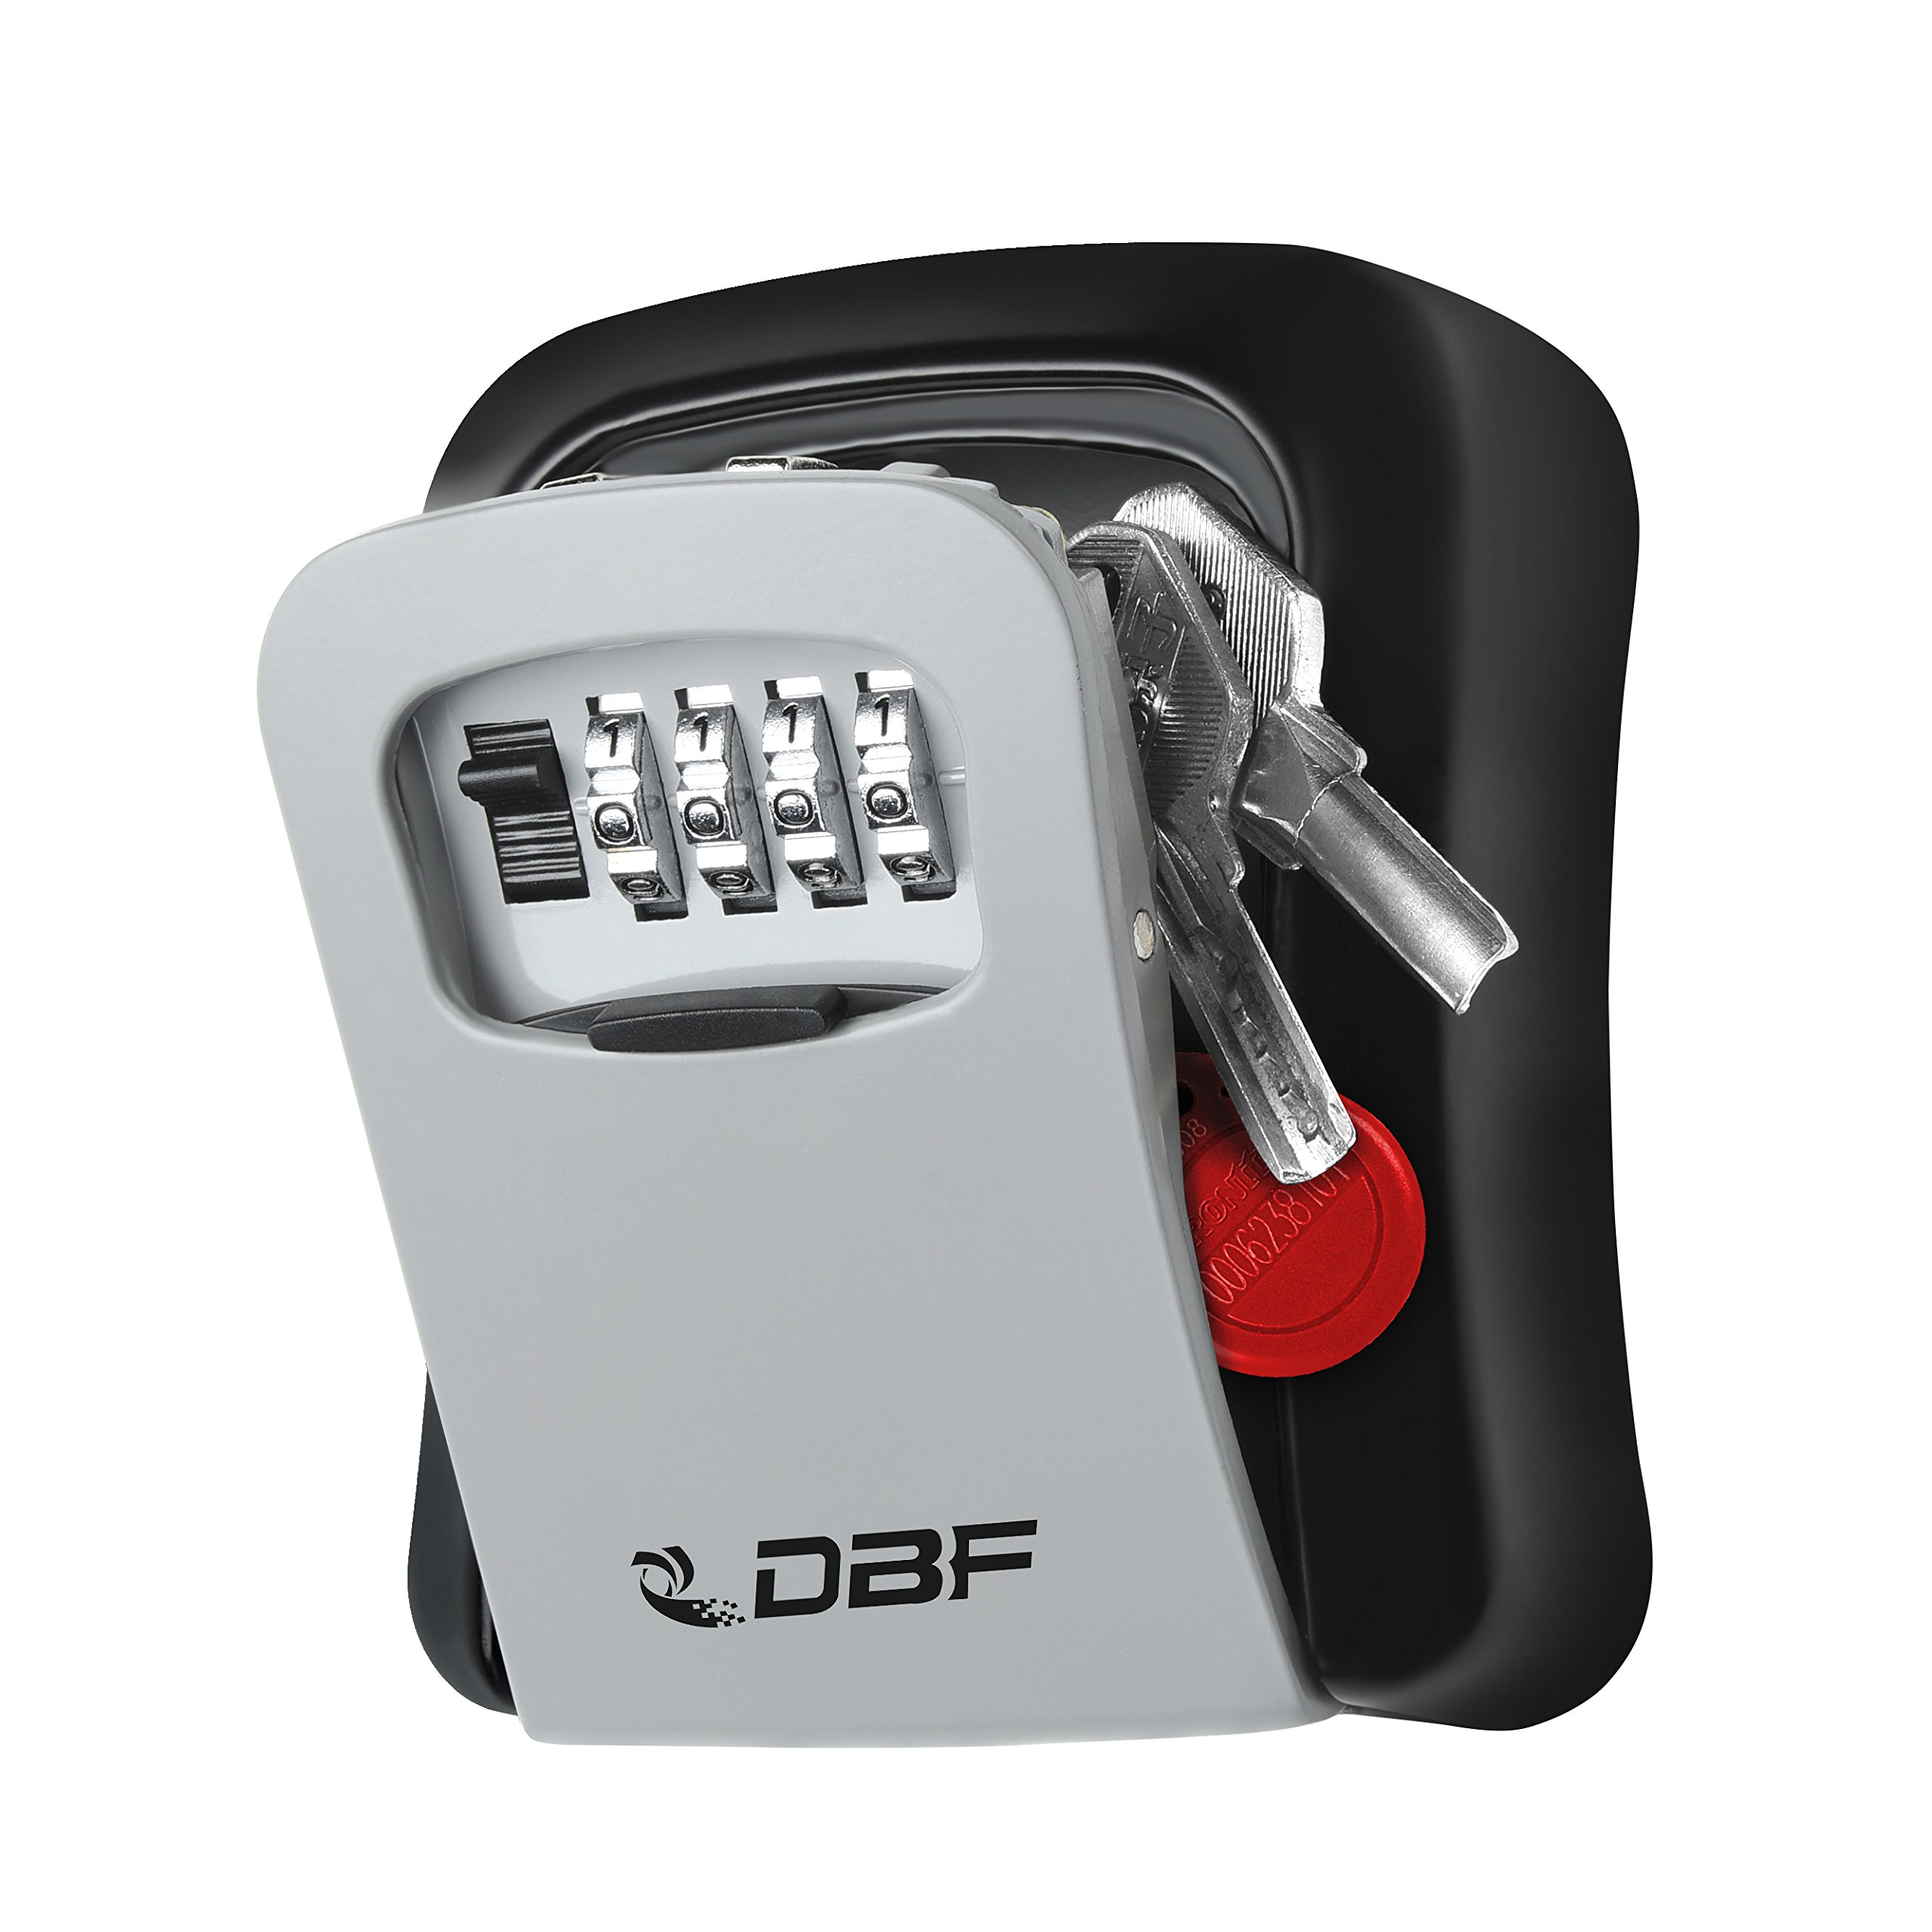 DBF Key Storage Lock Box, Key Hider, Combination Box, Wall Mounted Stainless Steel Key Safe Lock Box, Re-settable Code Box Lock Outdoor Indoor